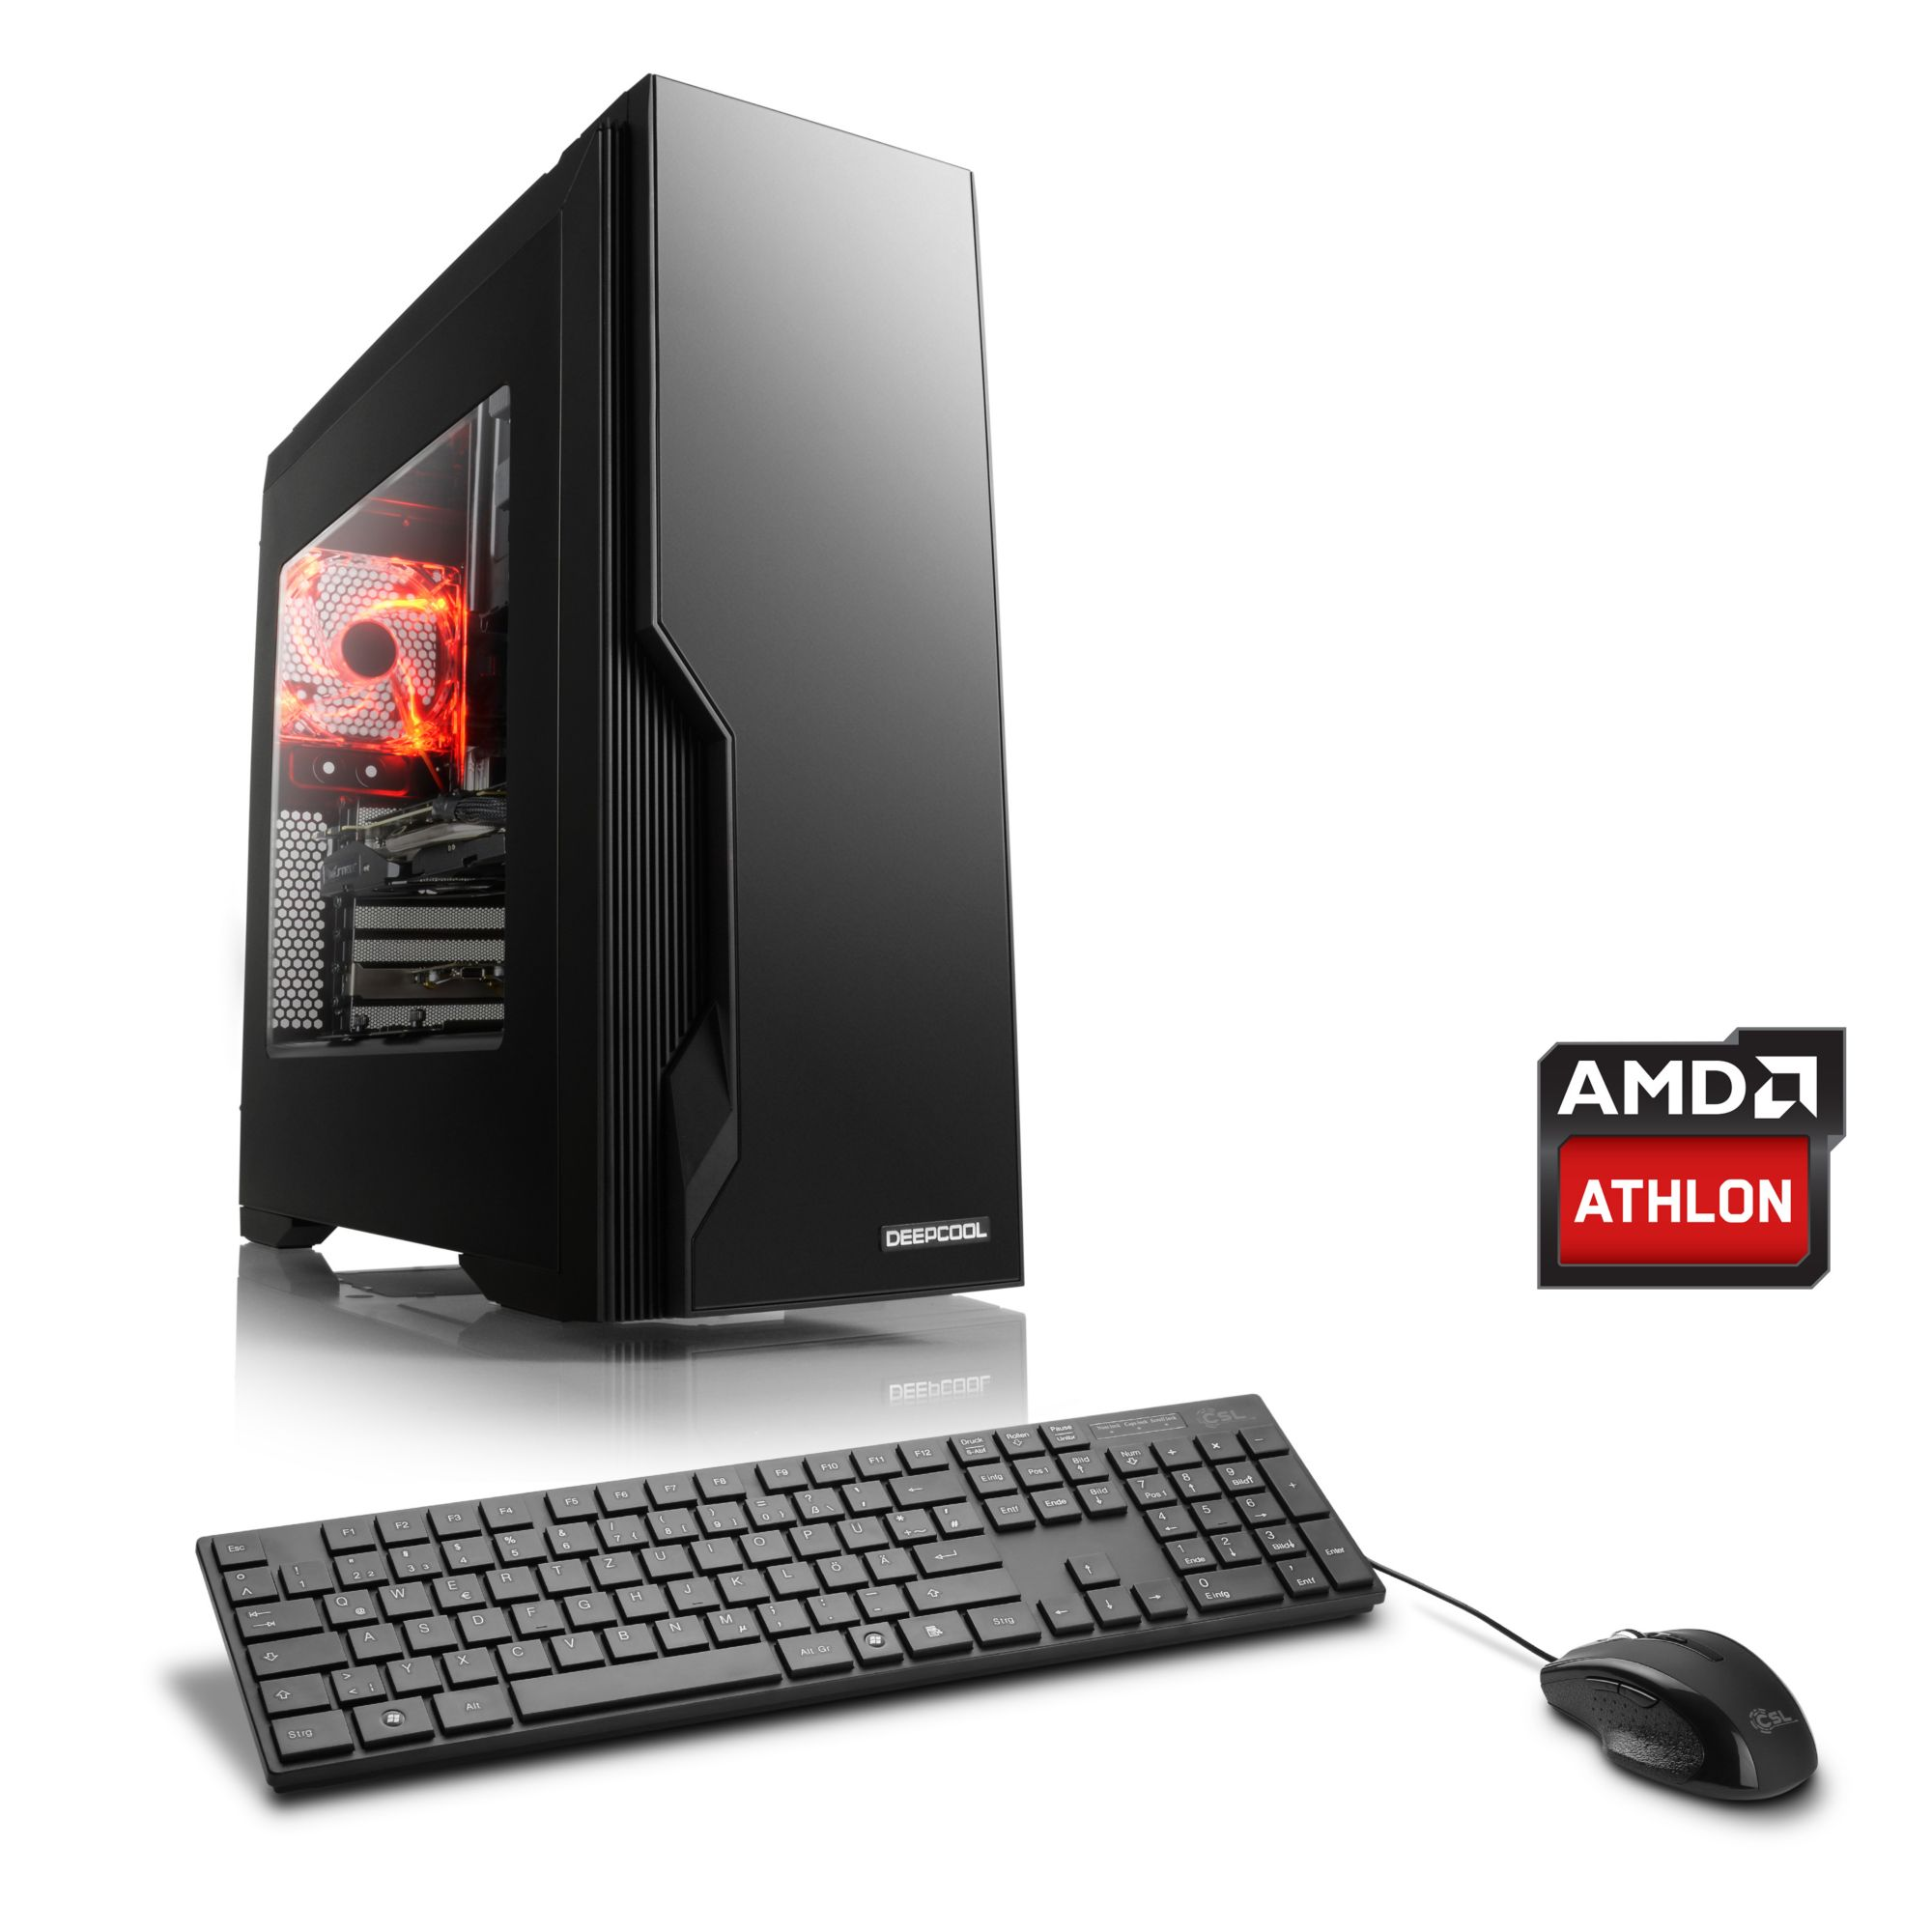 CSL  Gaming PC | AMD Athlon X4 880K | AMD RX 460 | 8 GB RAM »Sprint T4814 Windows 10 Home«